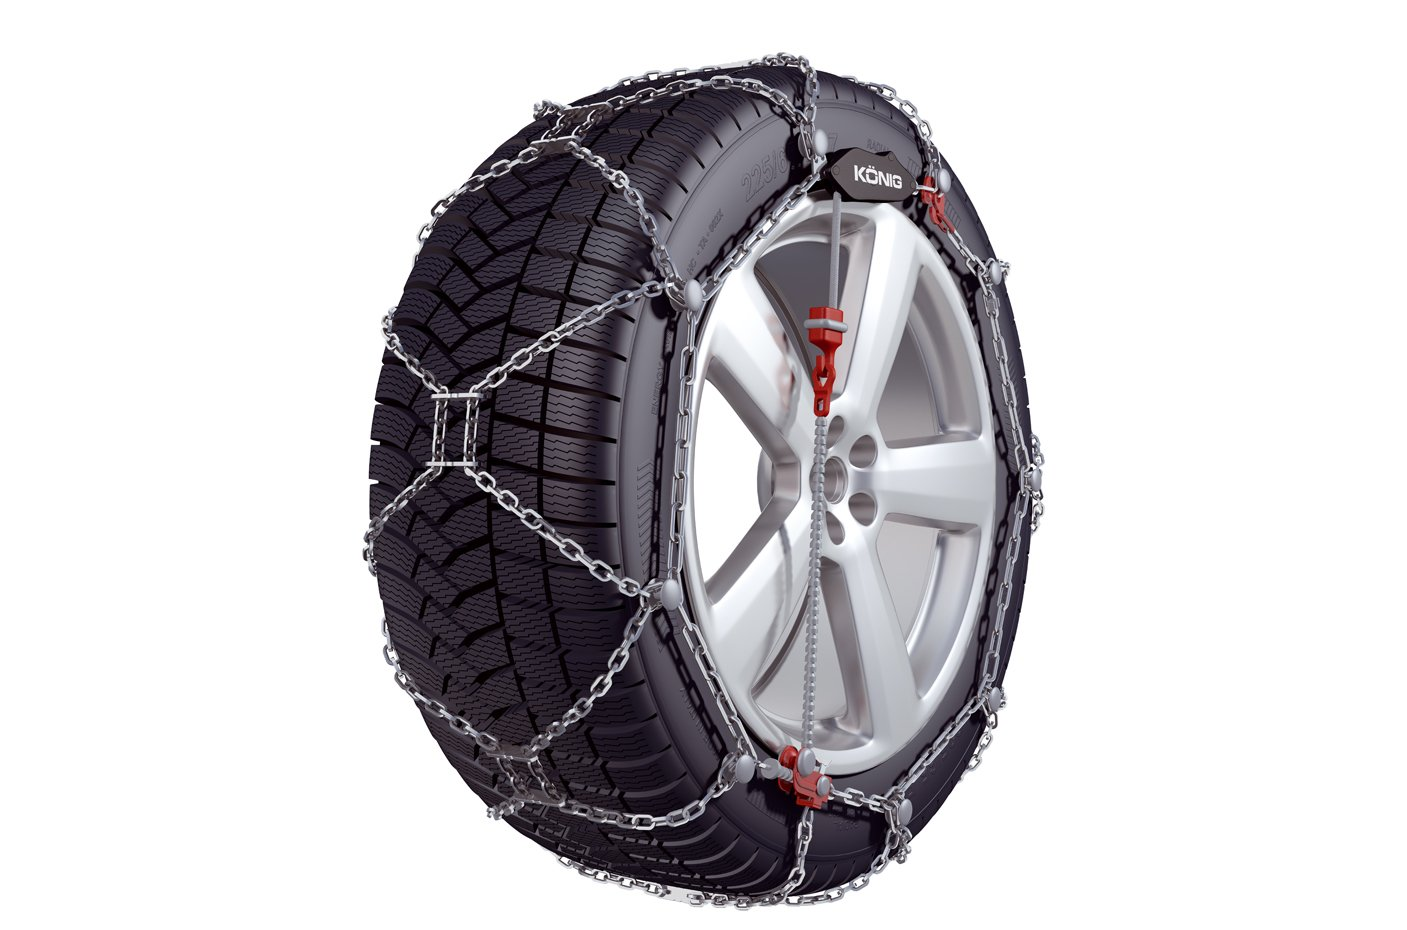 Best Snow Chains for SUVs